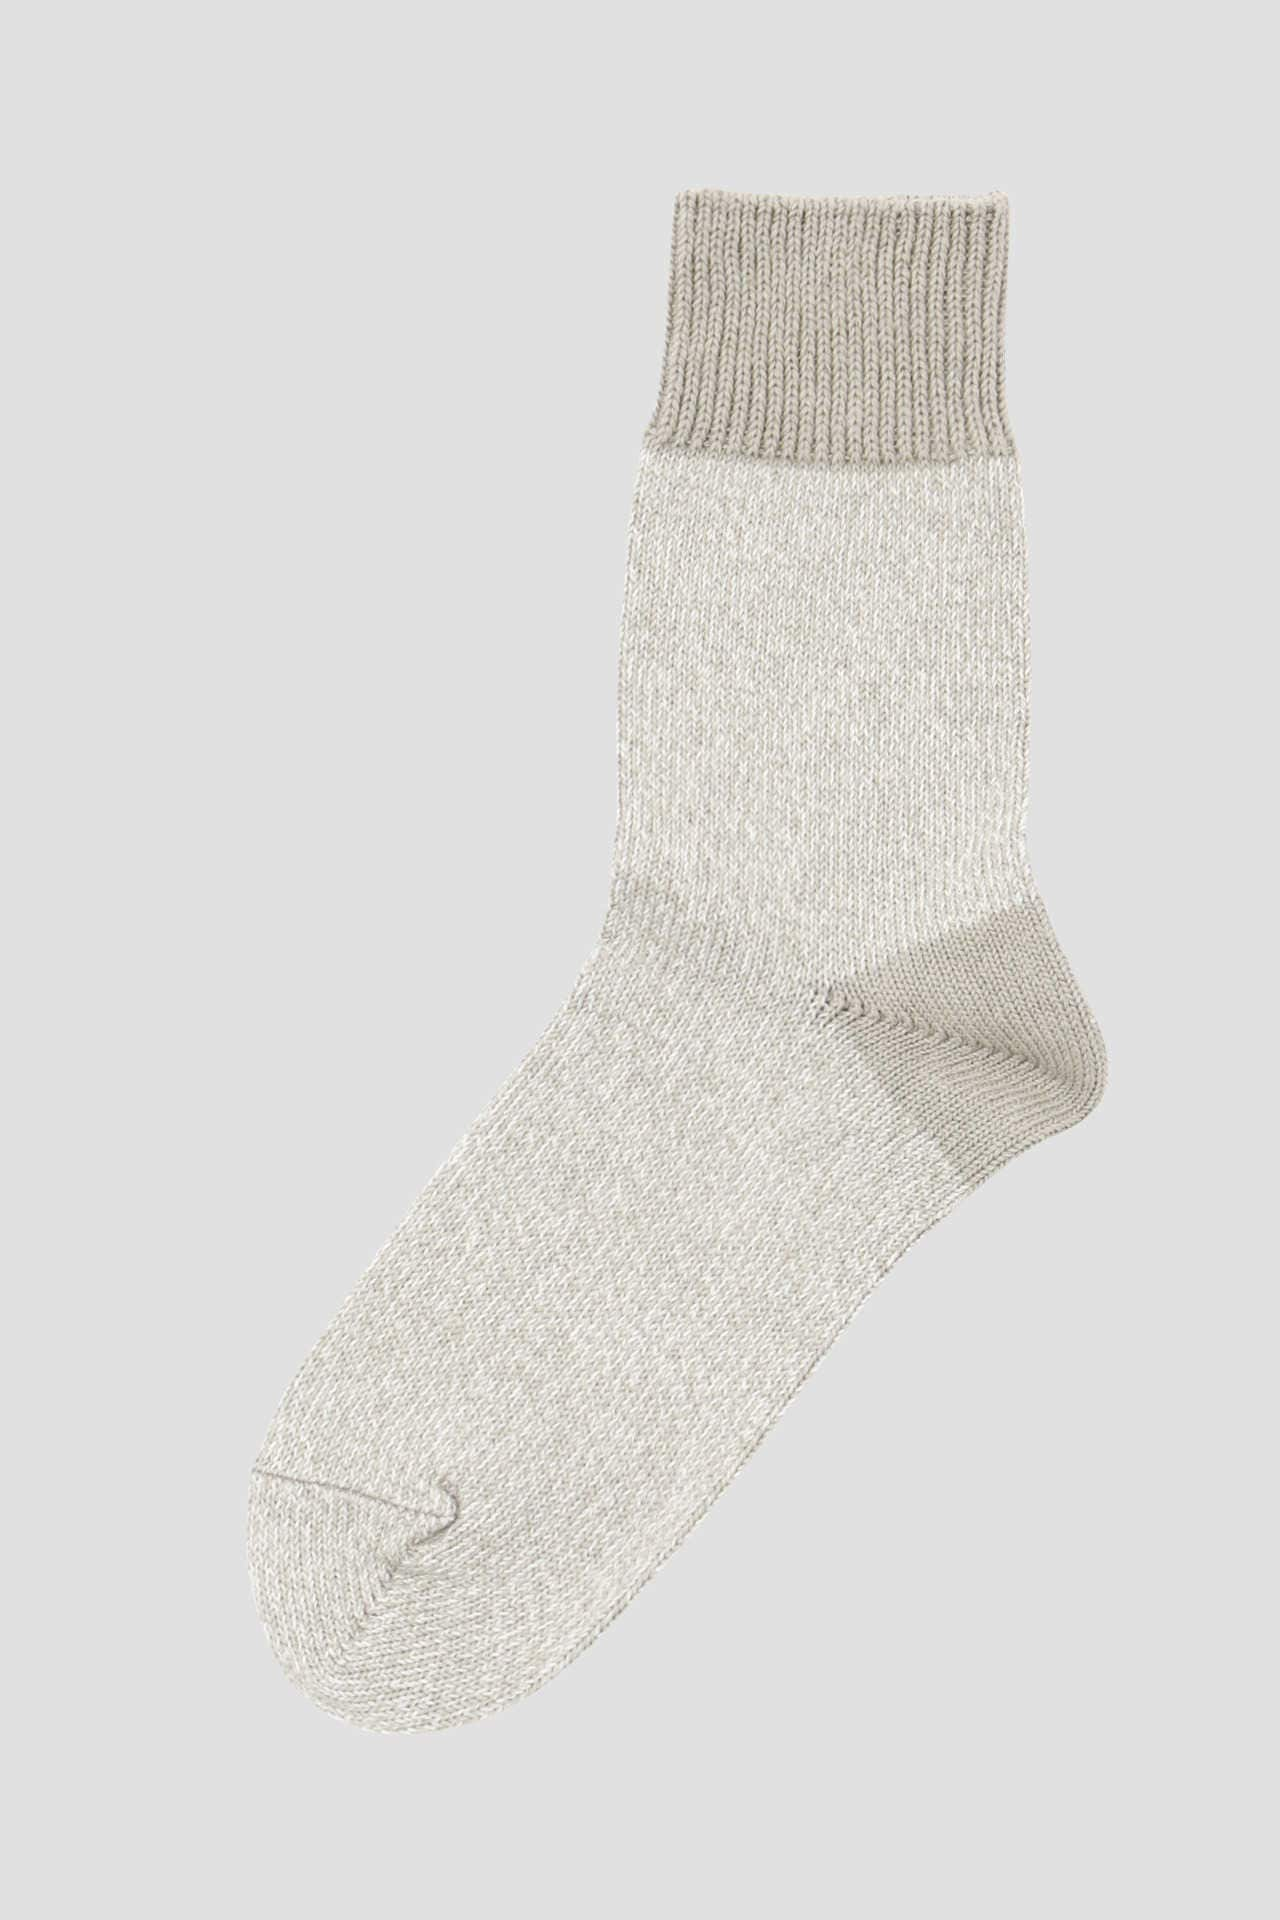 MELANGE COTTON LINEN SOCK6